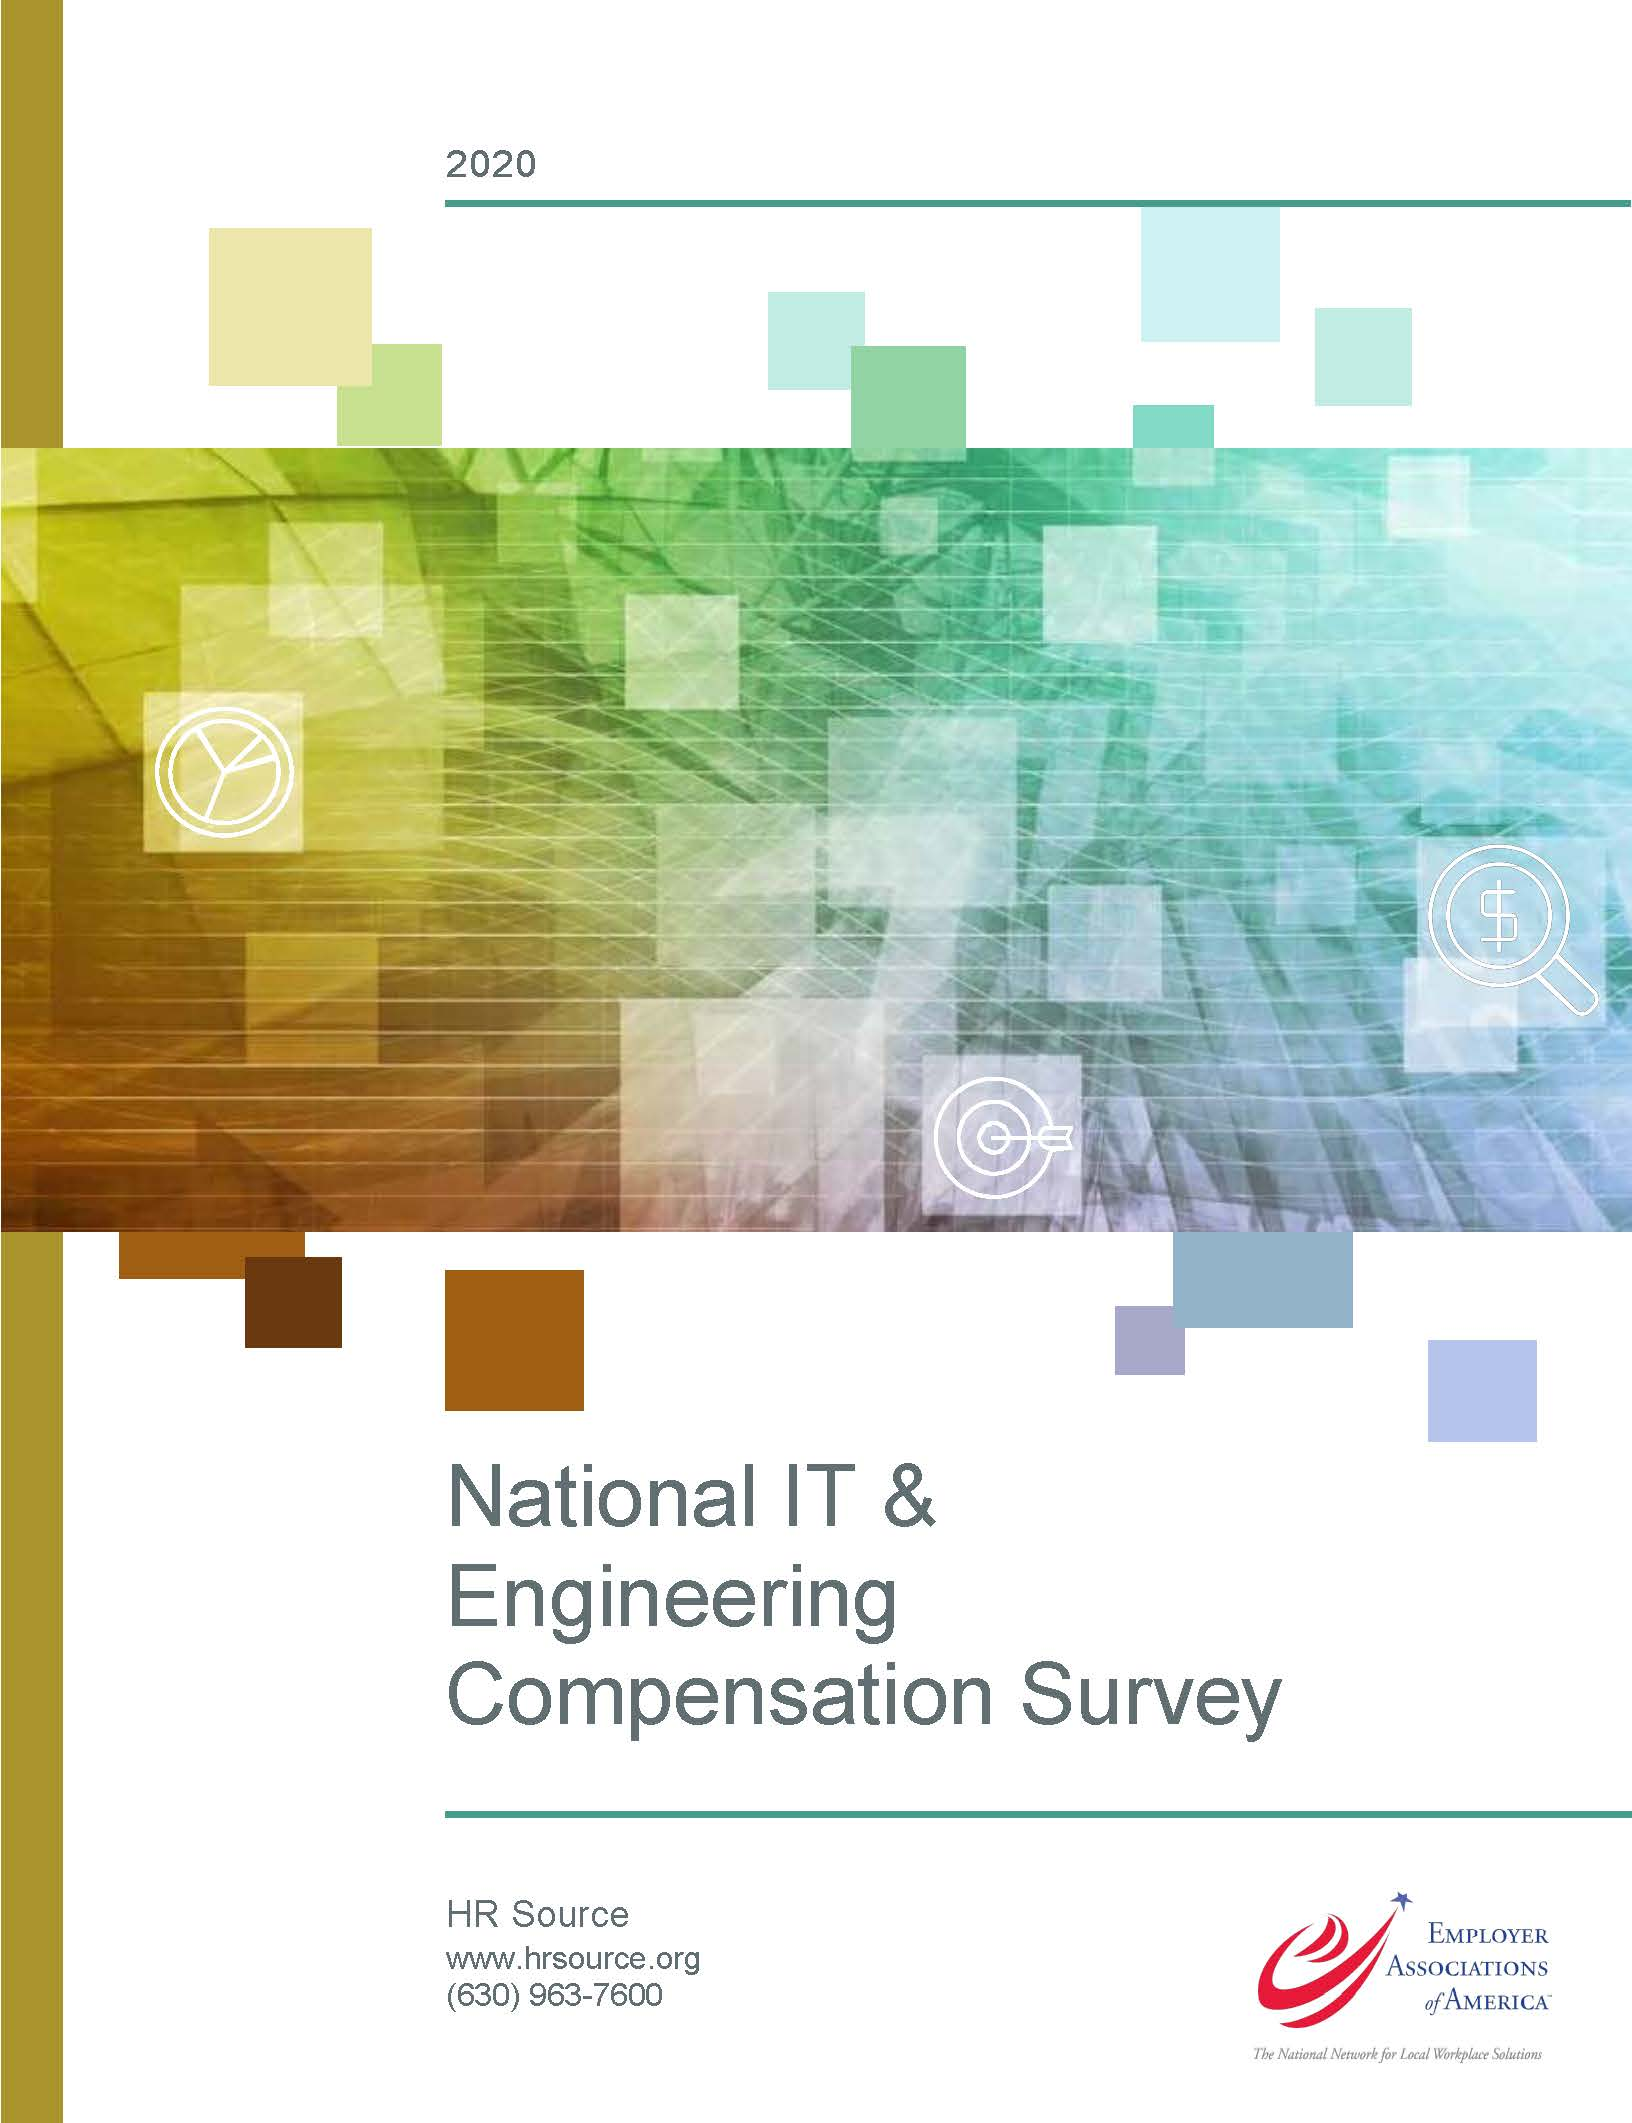 National IT & Engineering Survey 2020